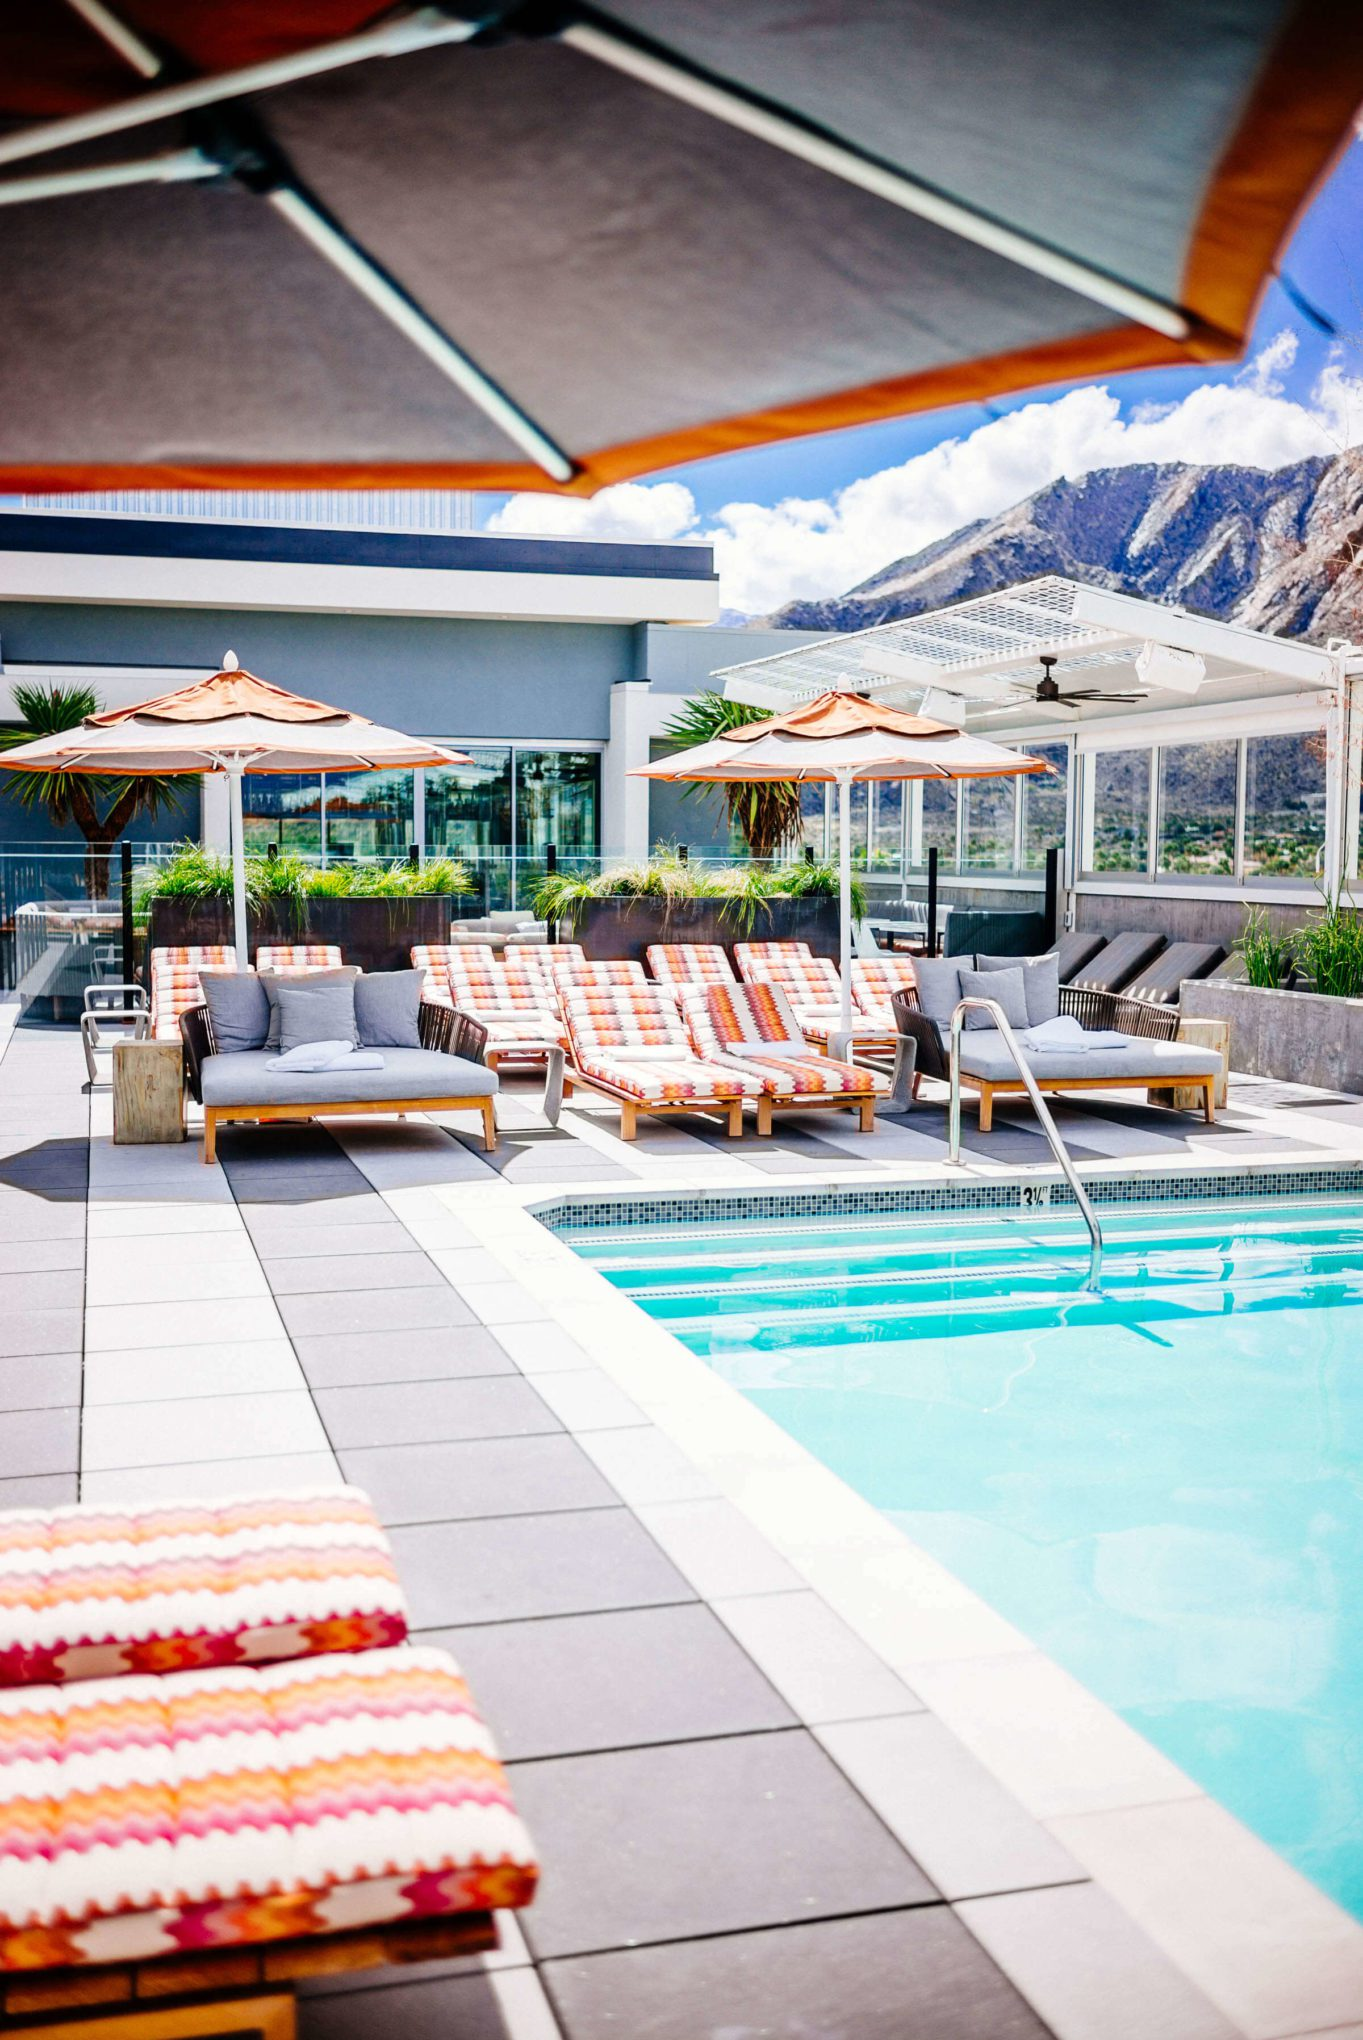 The Kimpton Rowan Hotel in Palm Springs has one of the best rooftop pools and patios in Palm Springs, it's a dessert retreat, The Taste SF